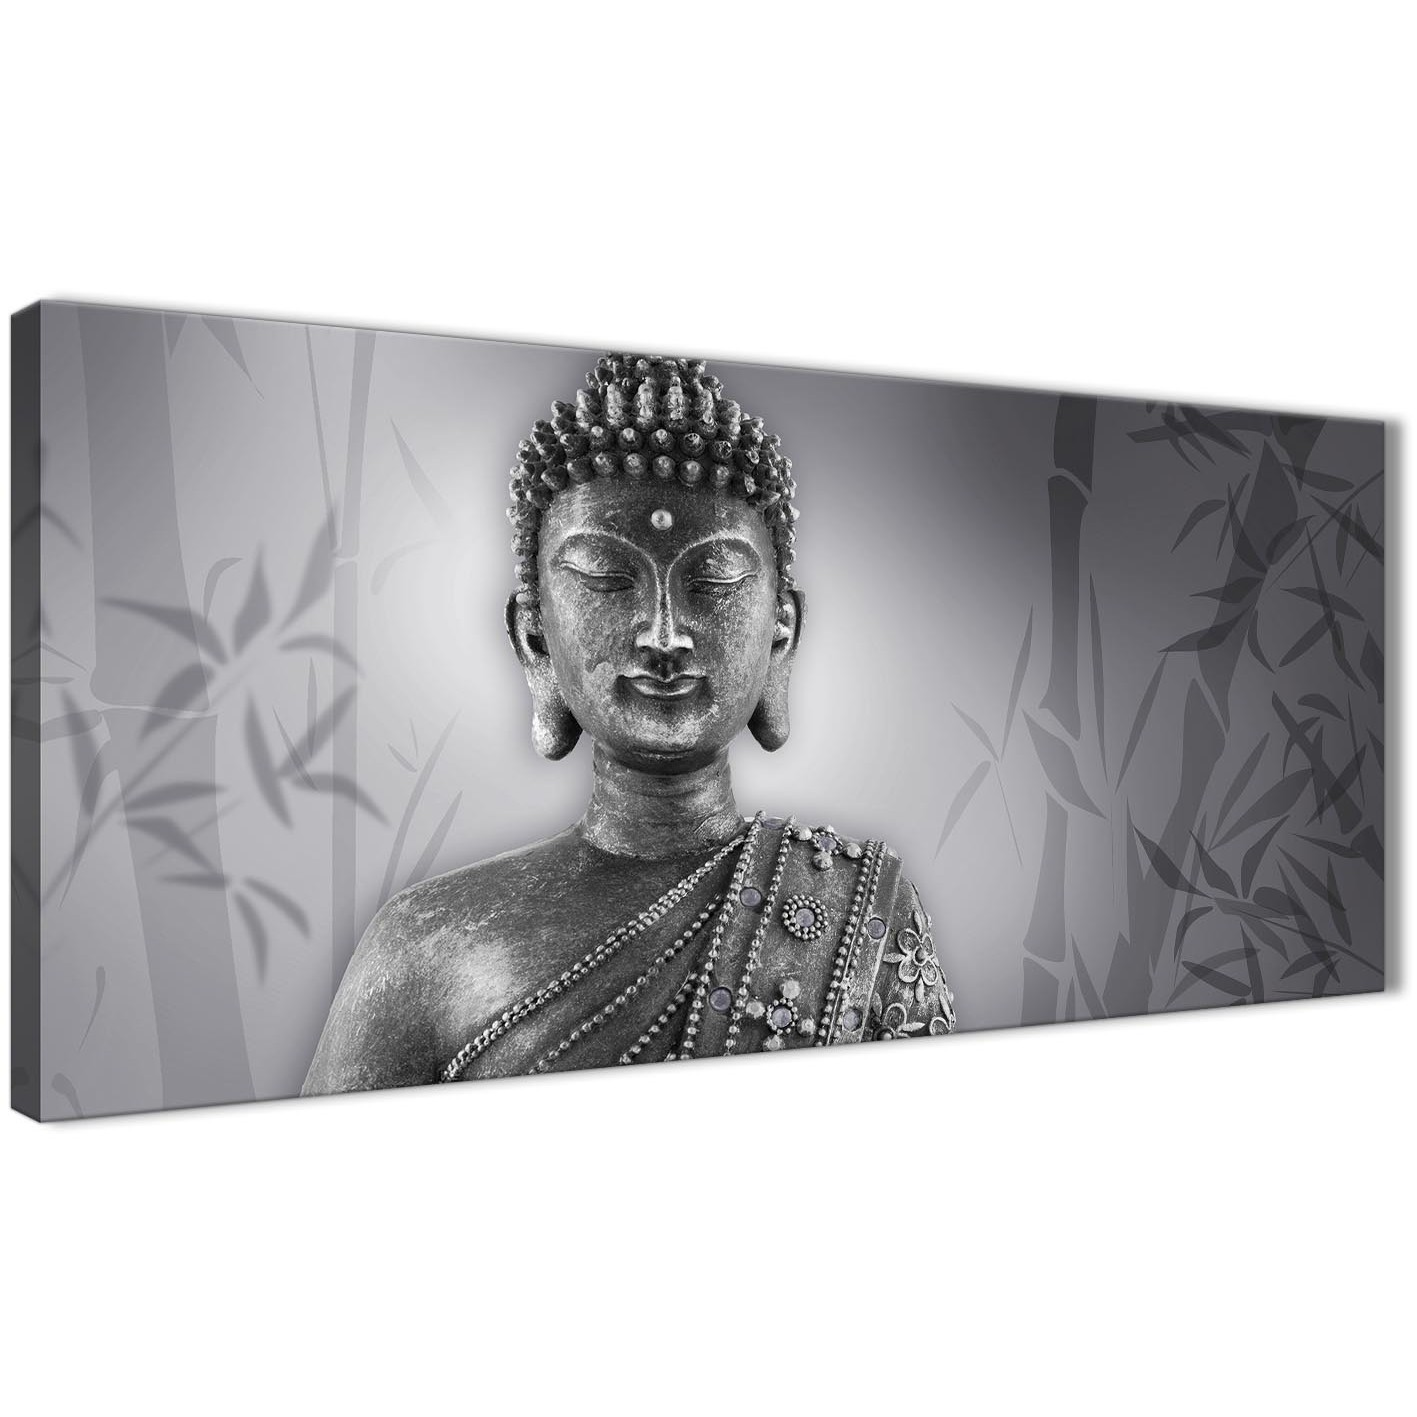 Panoramic black white buddha bedroom canvas wall art accessories 1373 120cm print display gallery item 1